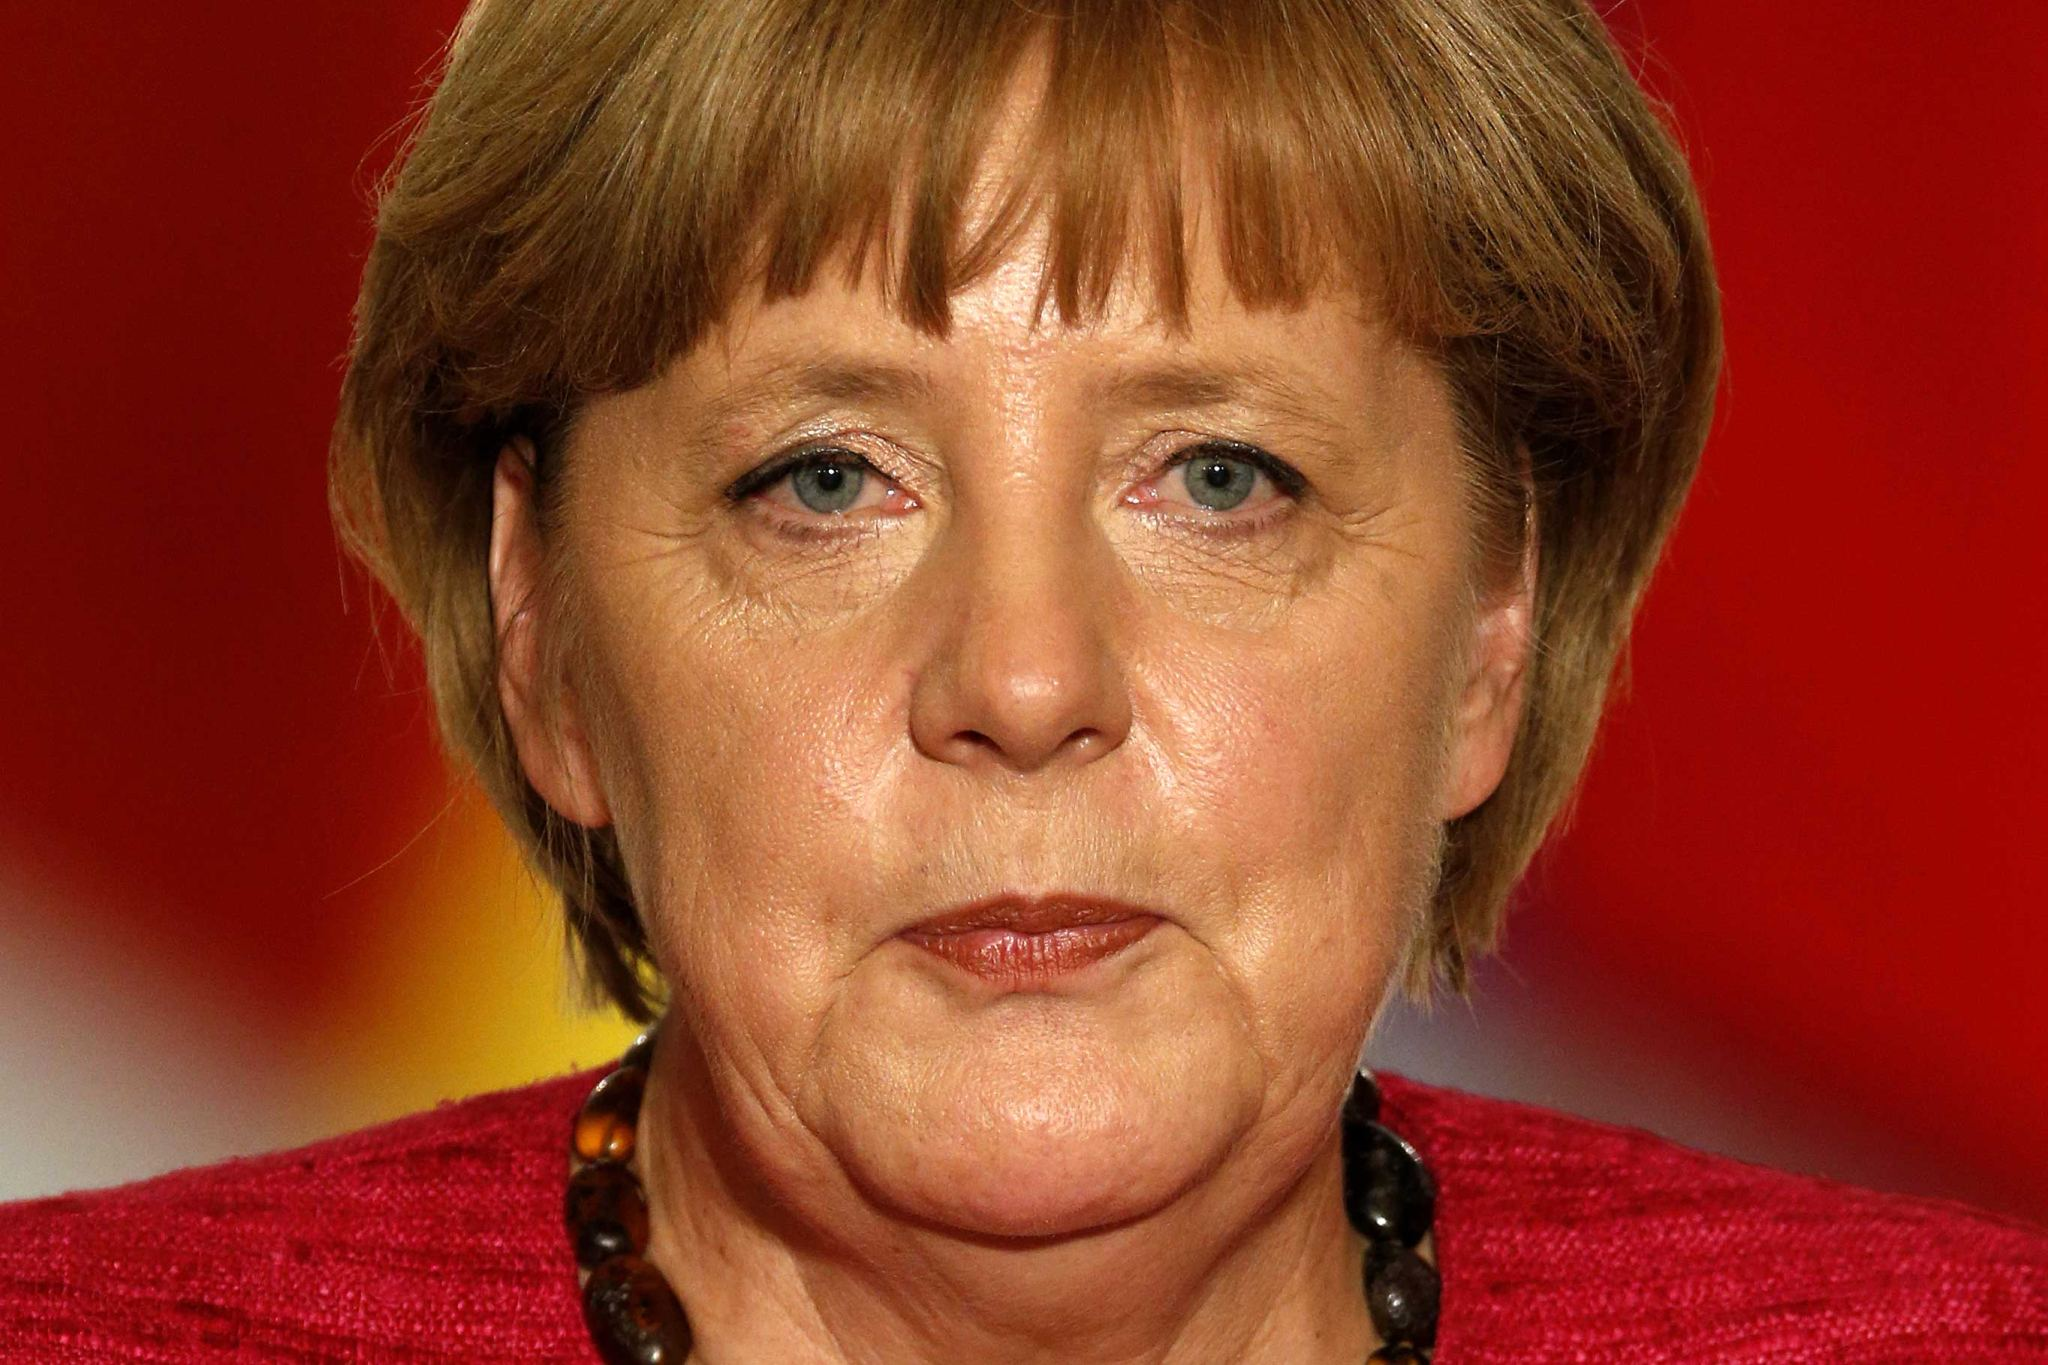 Mac Makeup Wallpaper Iphone Angela Merkel Photos Wallpapers High Quality Download Free